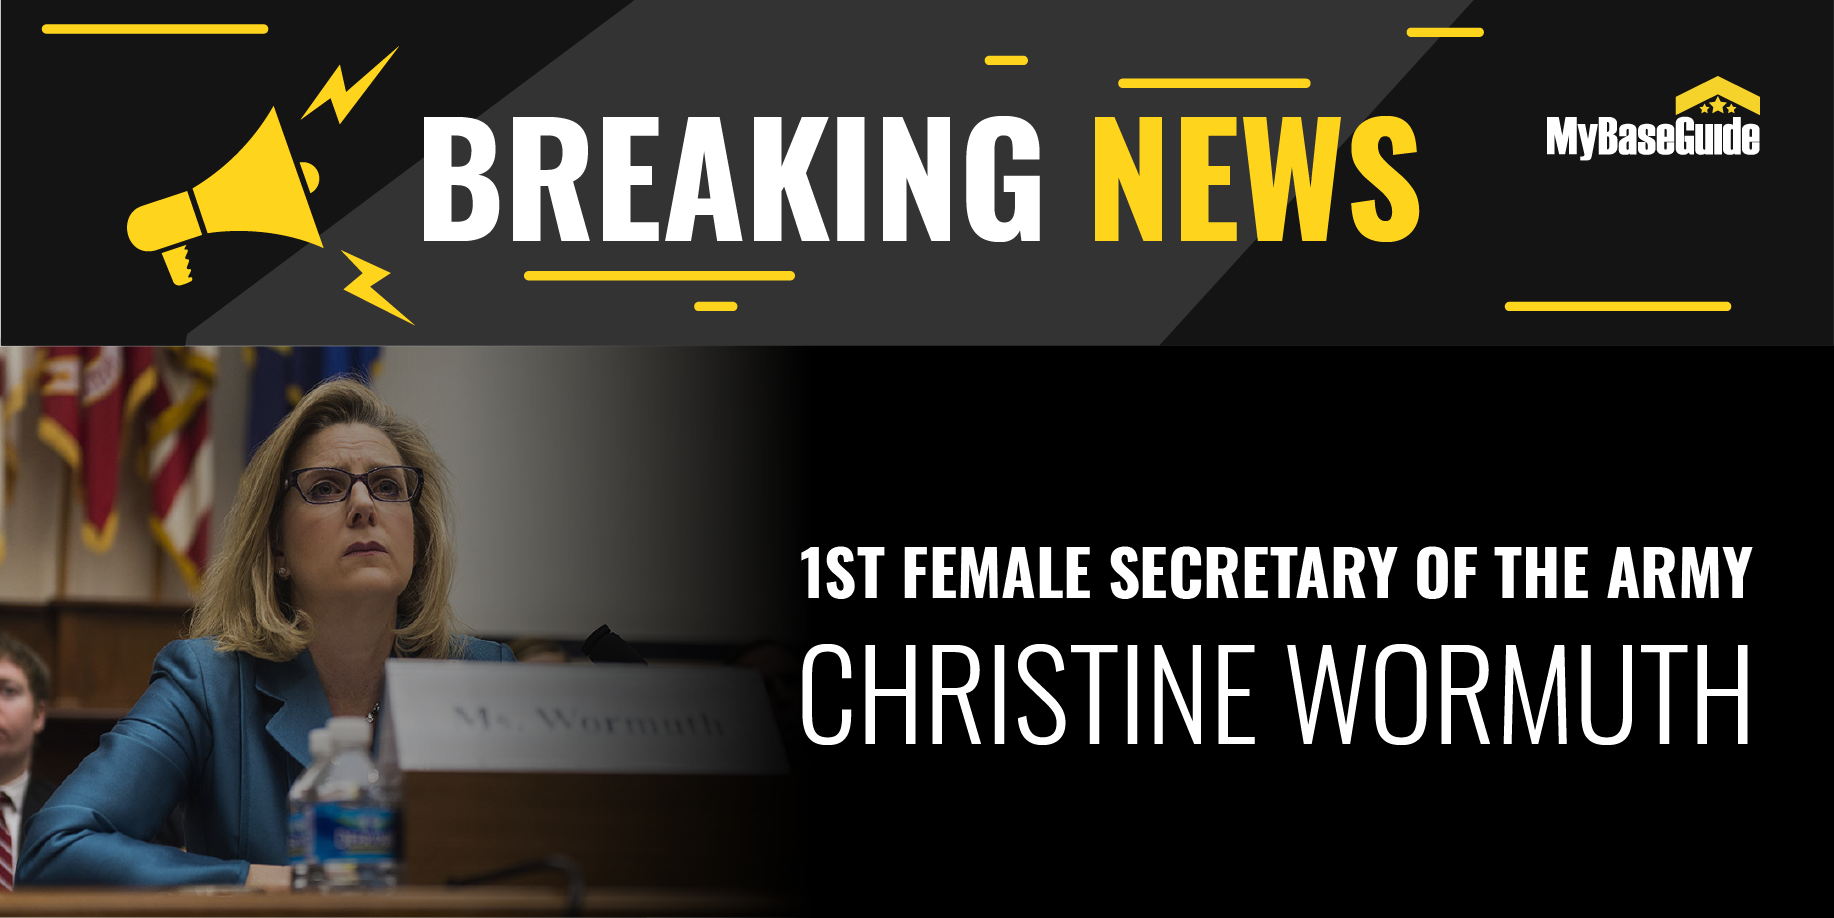 Wormuth Shatters Glass Ceiling as the 1st Female Secretary of the Army